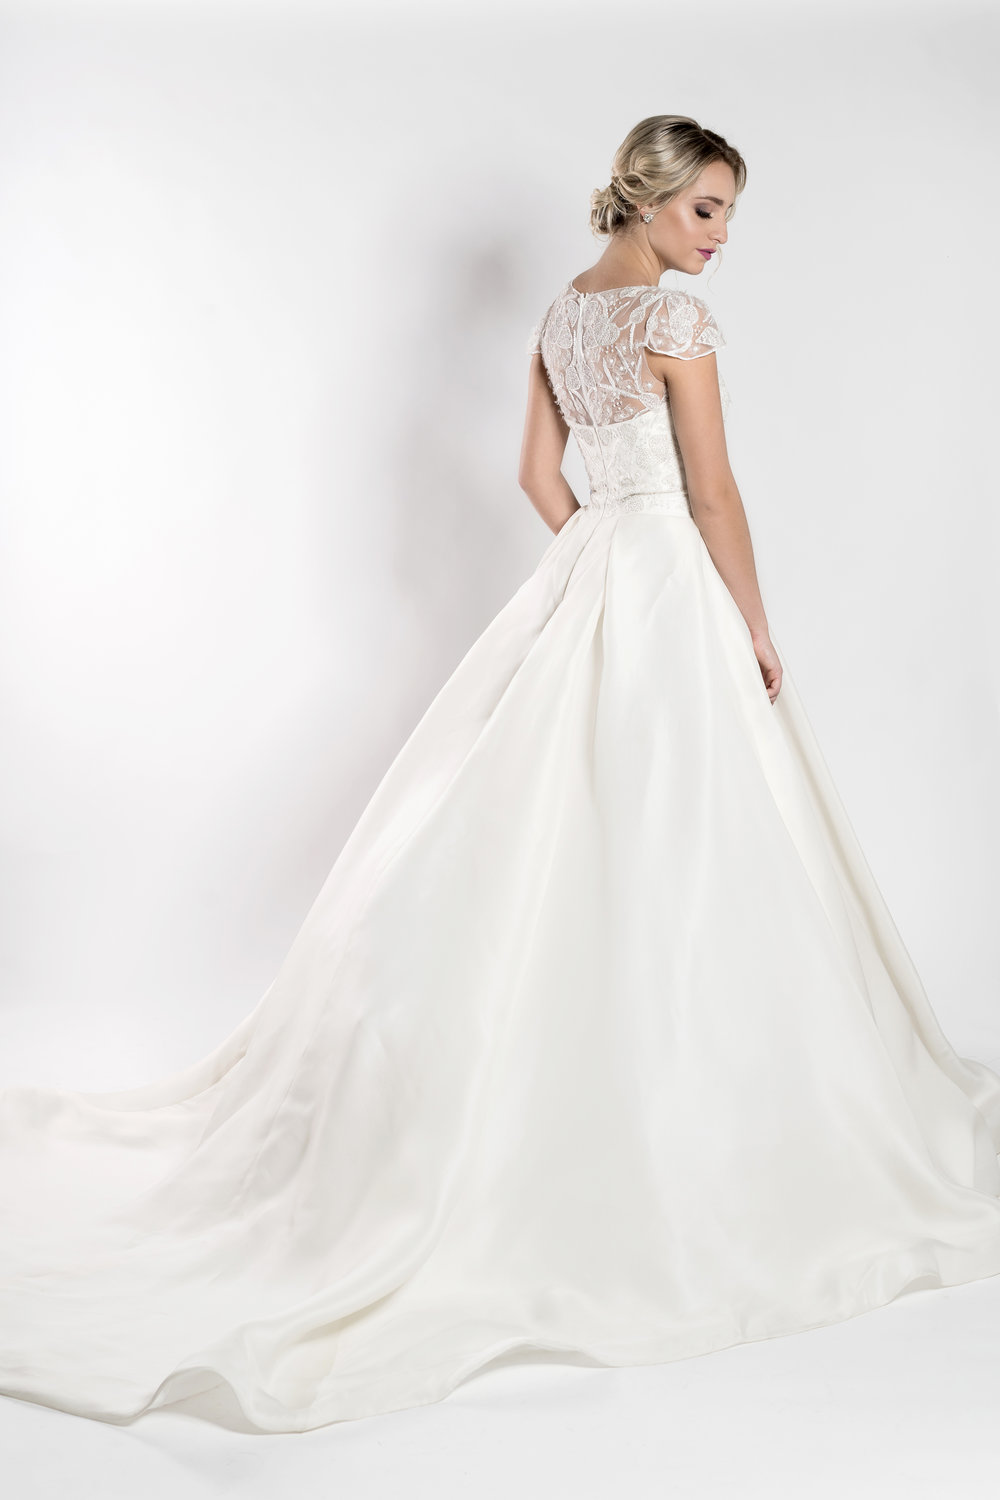 Ballgown wedding dress with detailed back Orlando bridal boutique The Bridal Finery